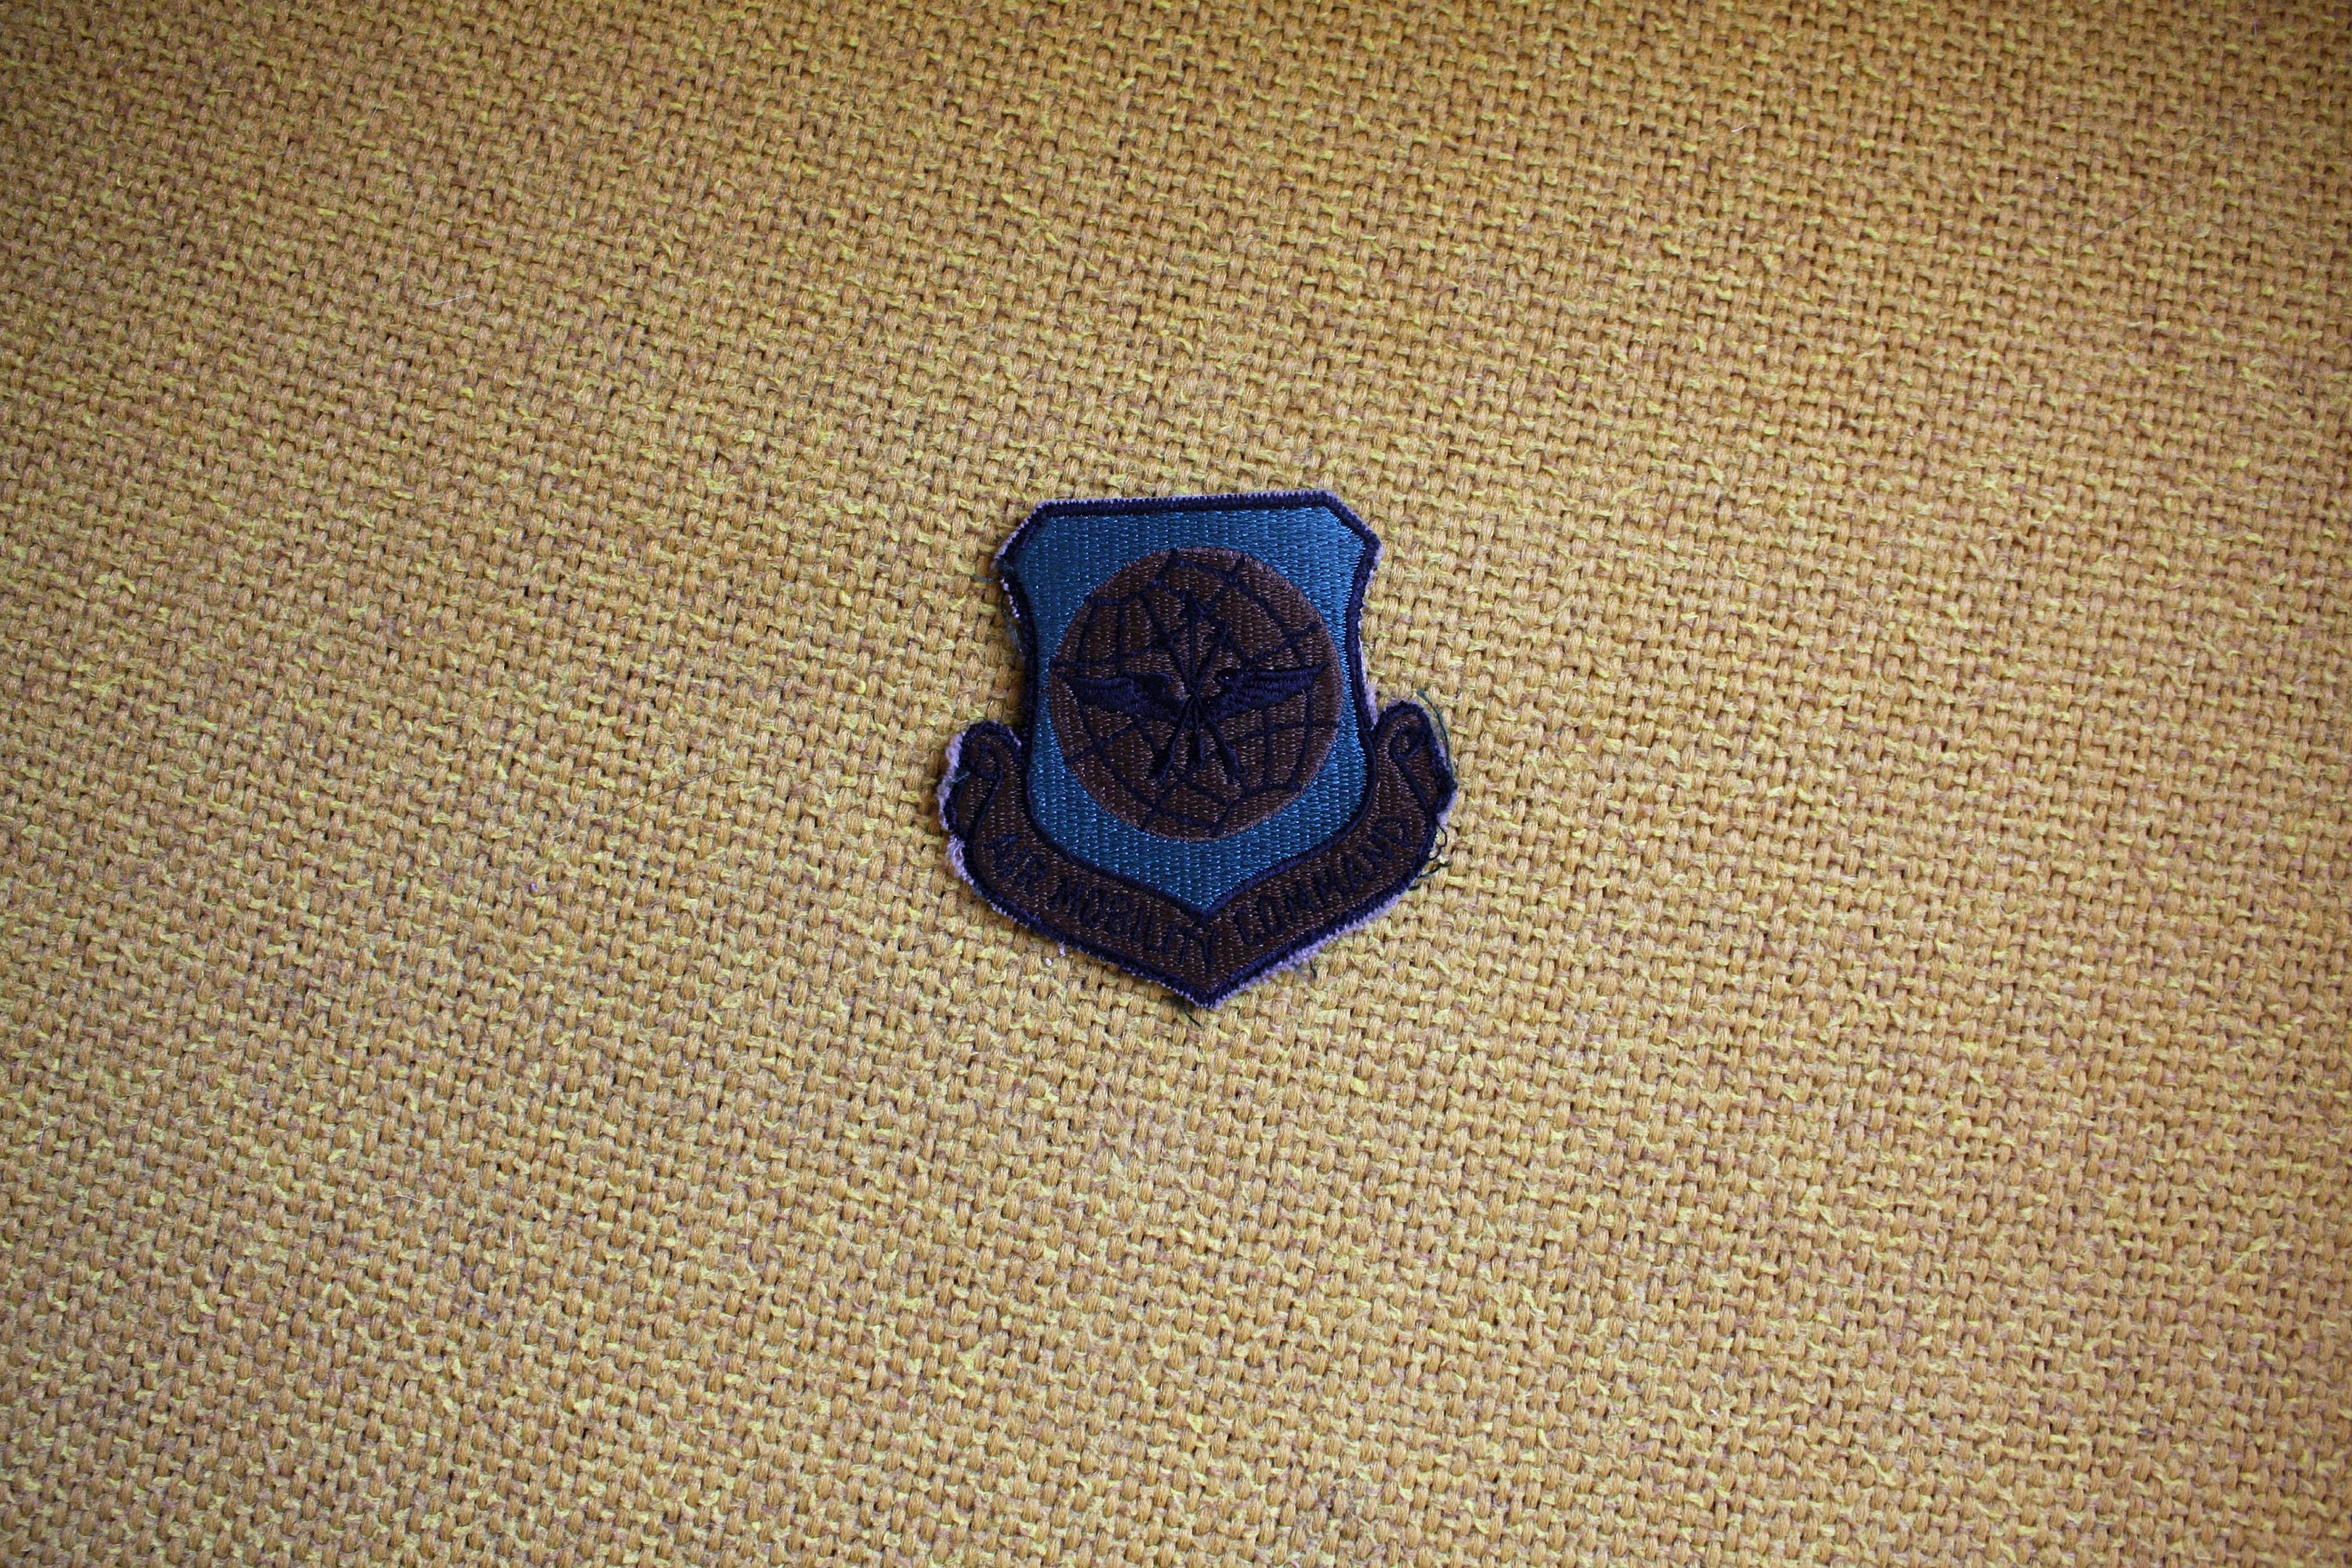 Vintage Air Mobility Command Embroidered Patch 70s Or 80s Rare Force Army Green Military